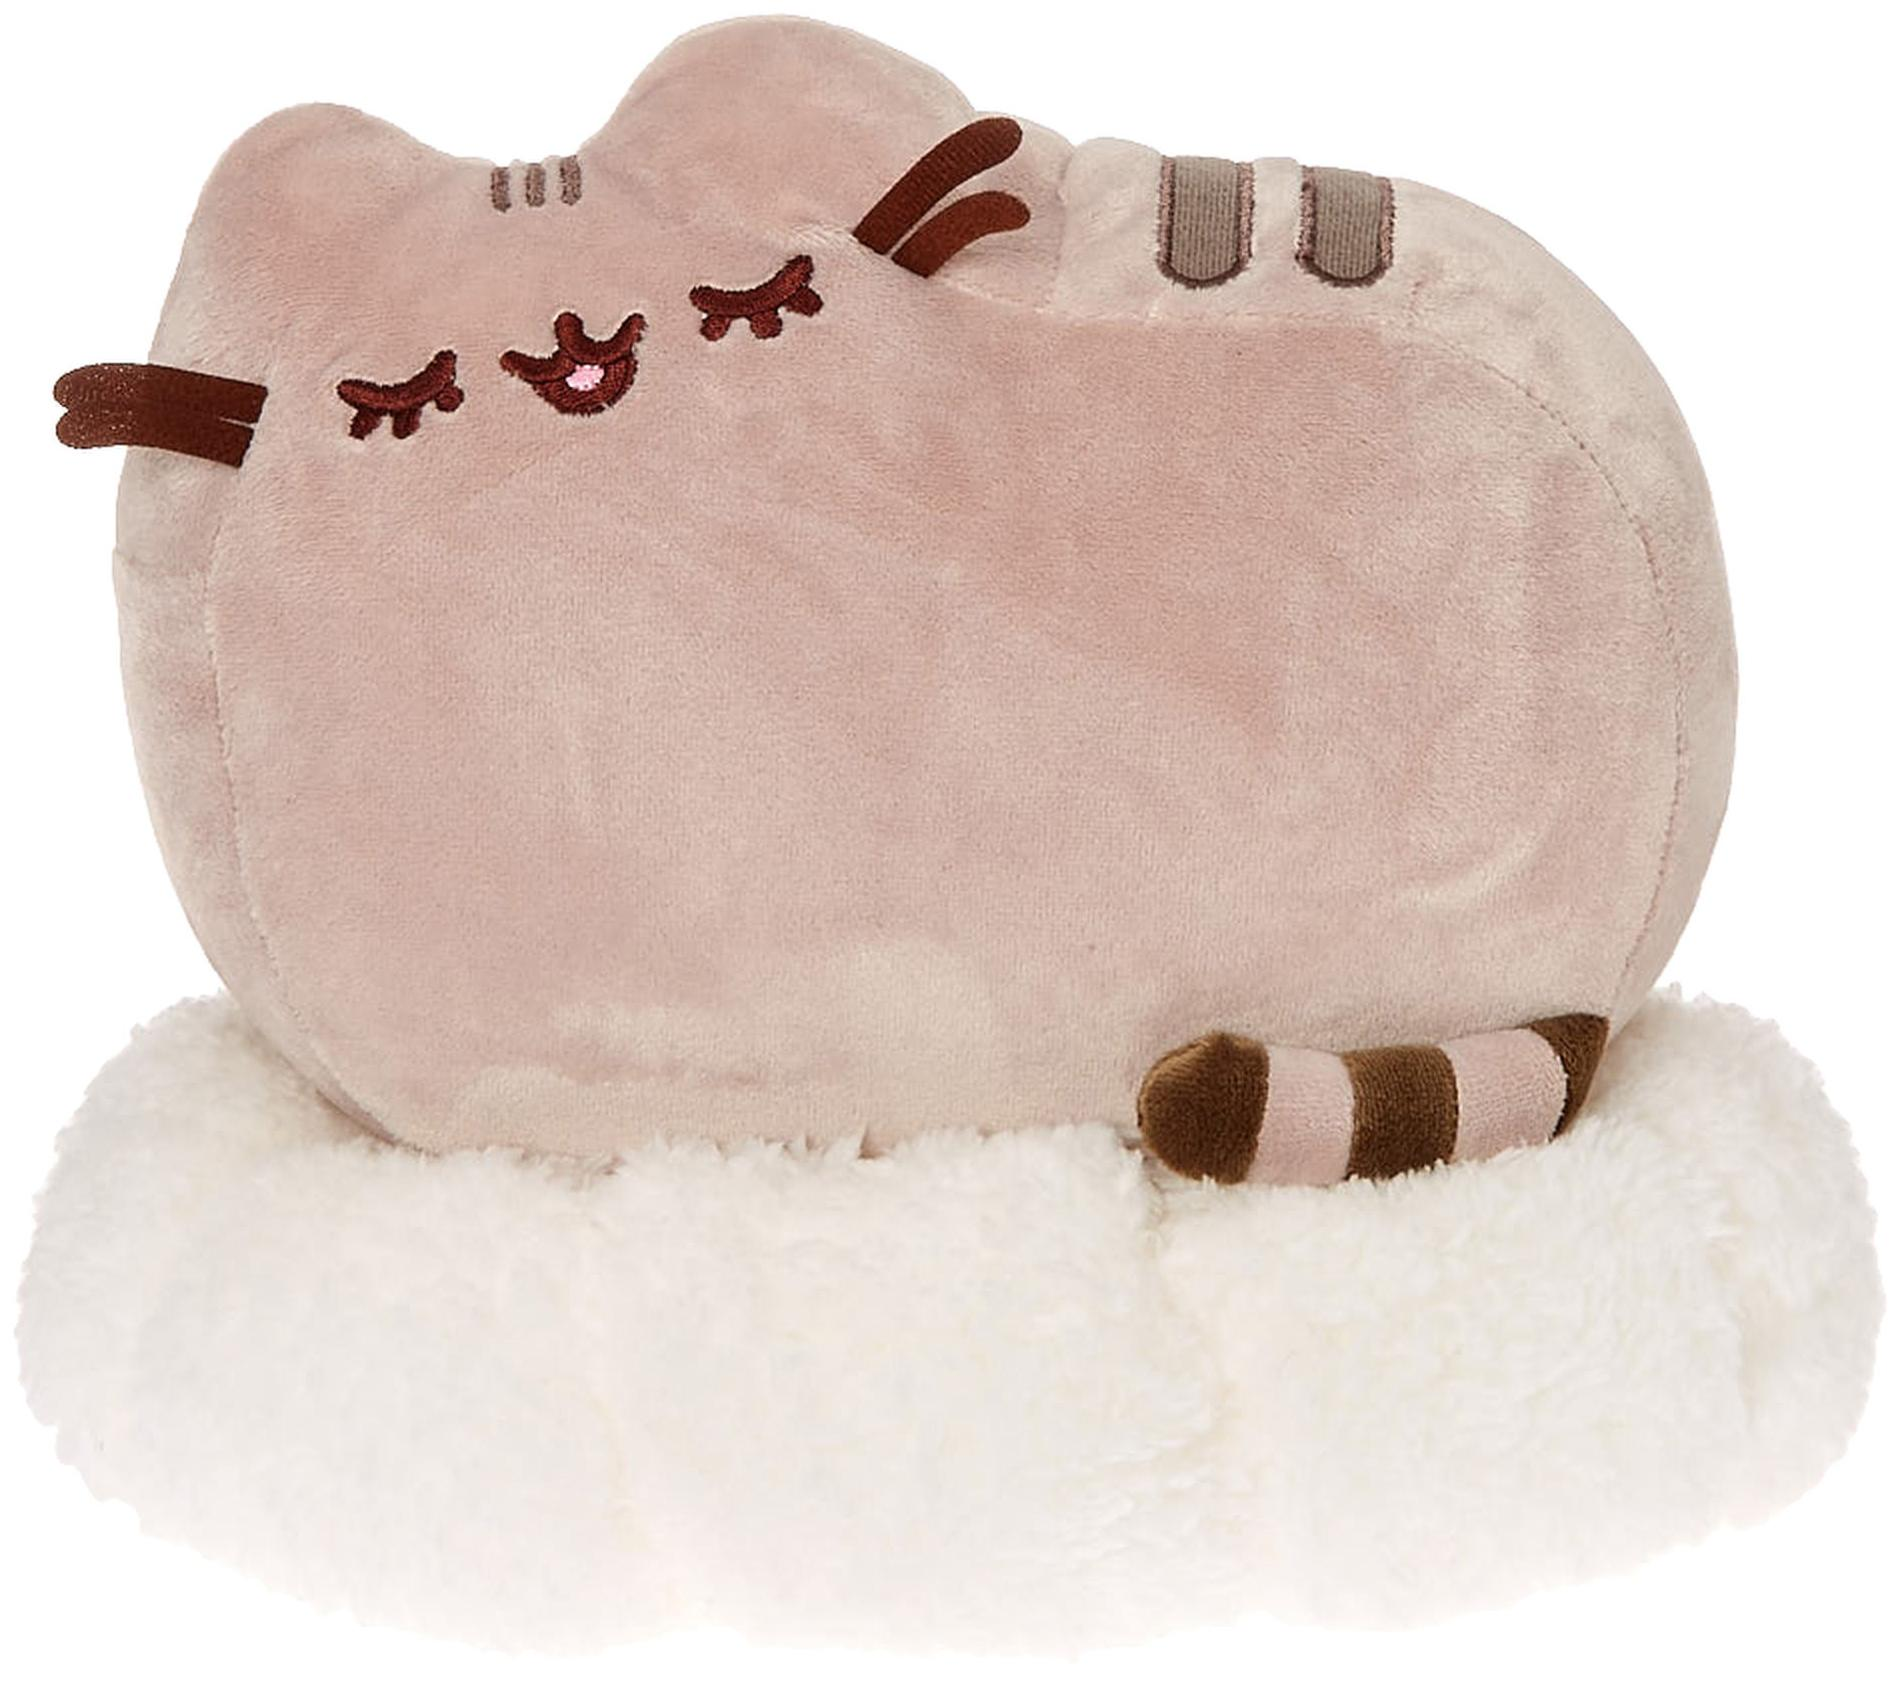 Buy Sell Cheapest Gund Pusheen 9 Best Quality Product Deals Sushi Dreaming On A Cloud Plush Toy